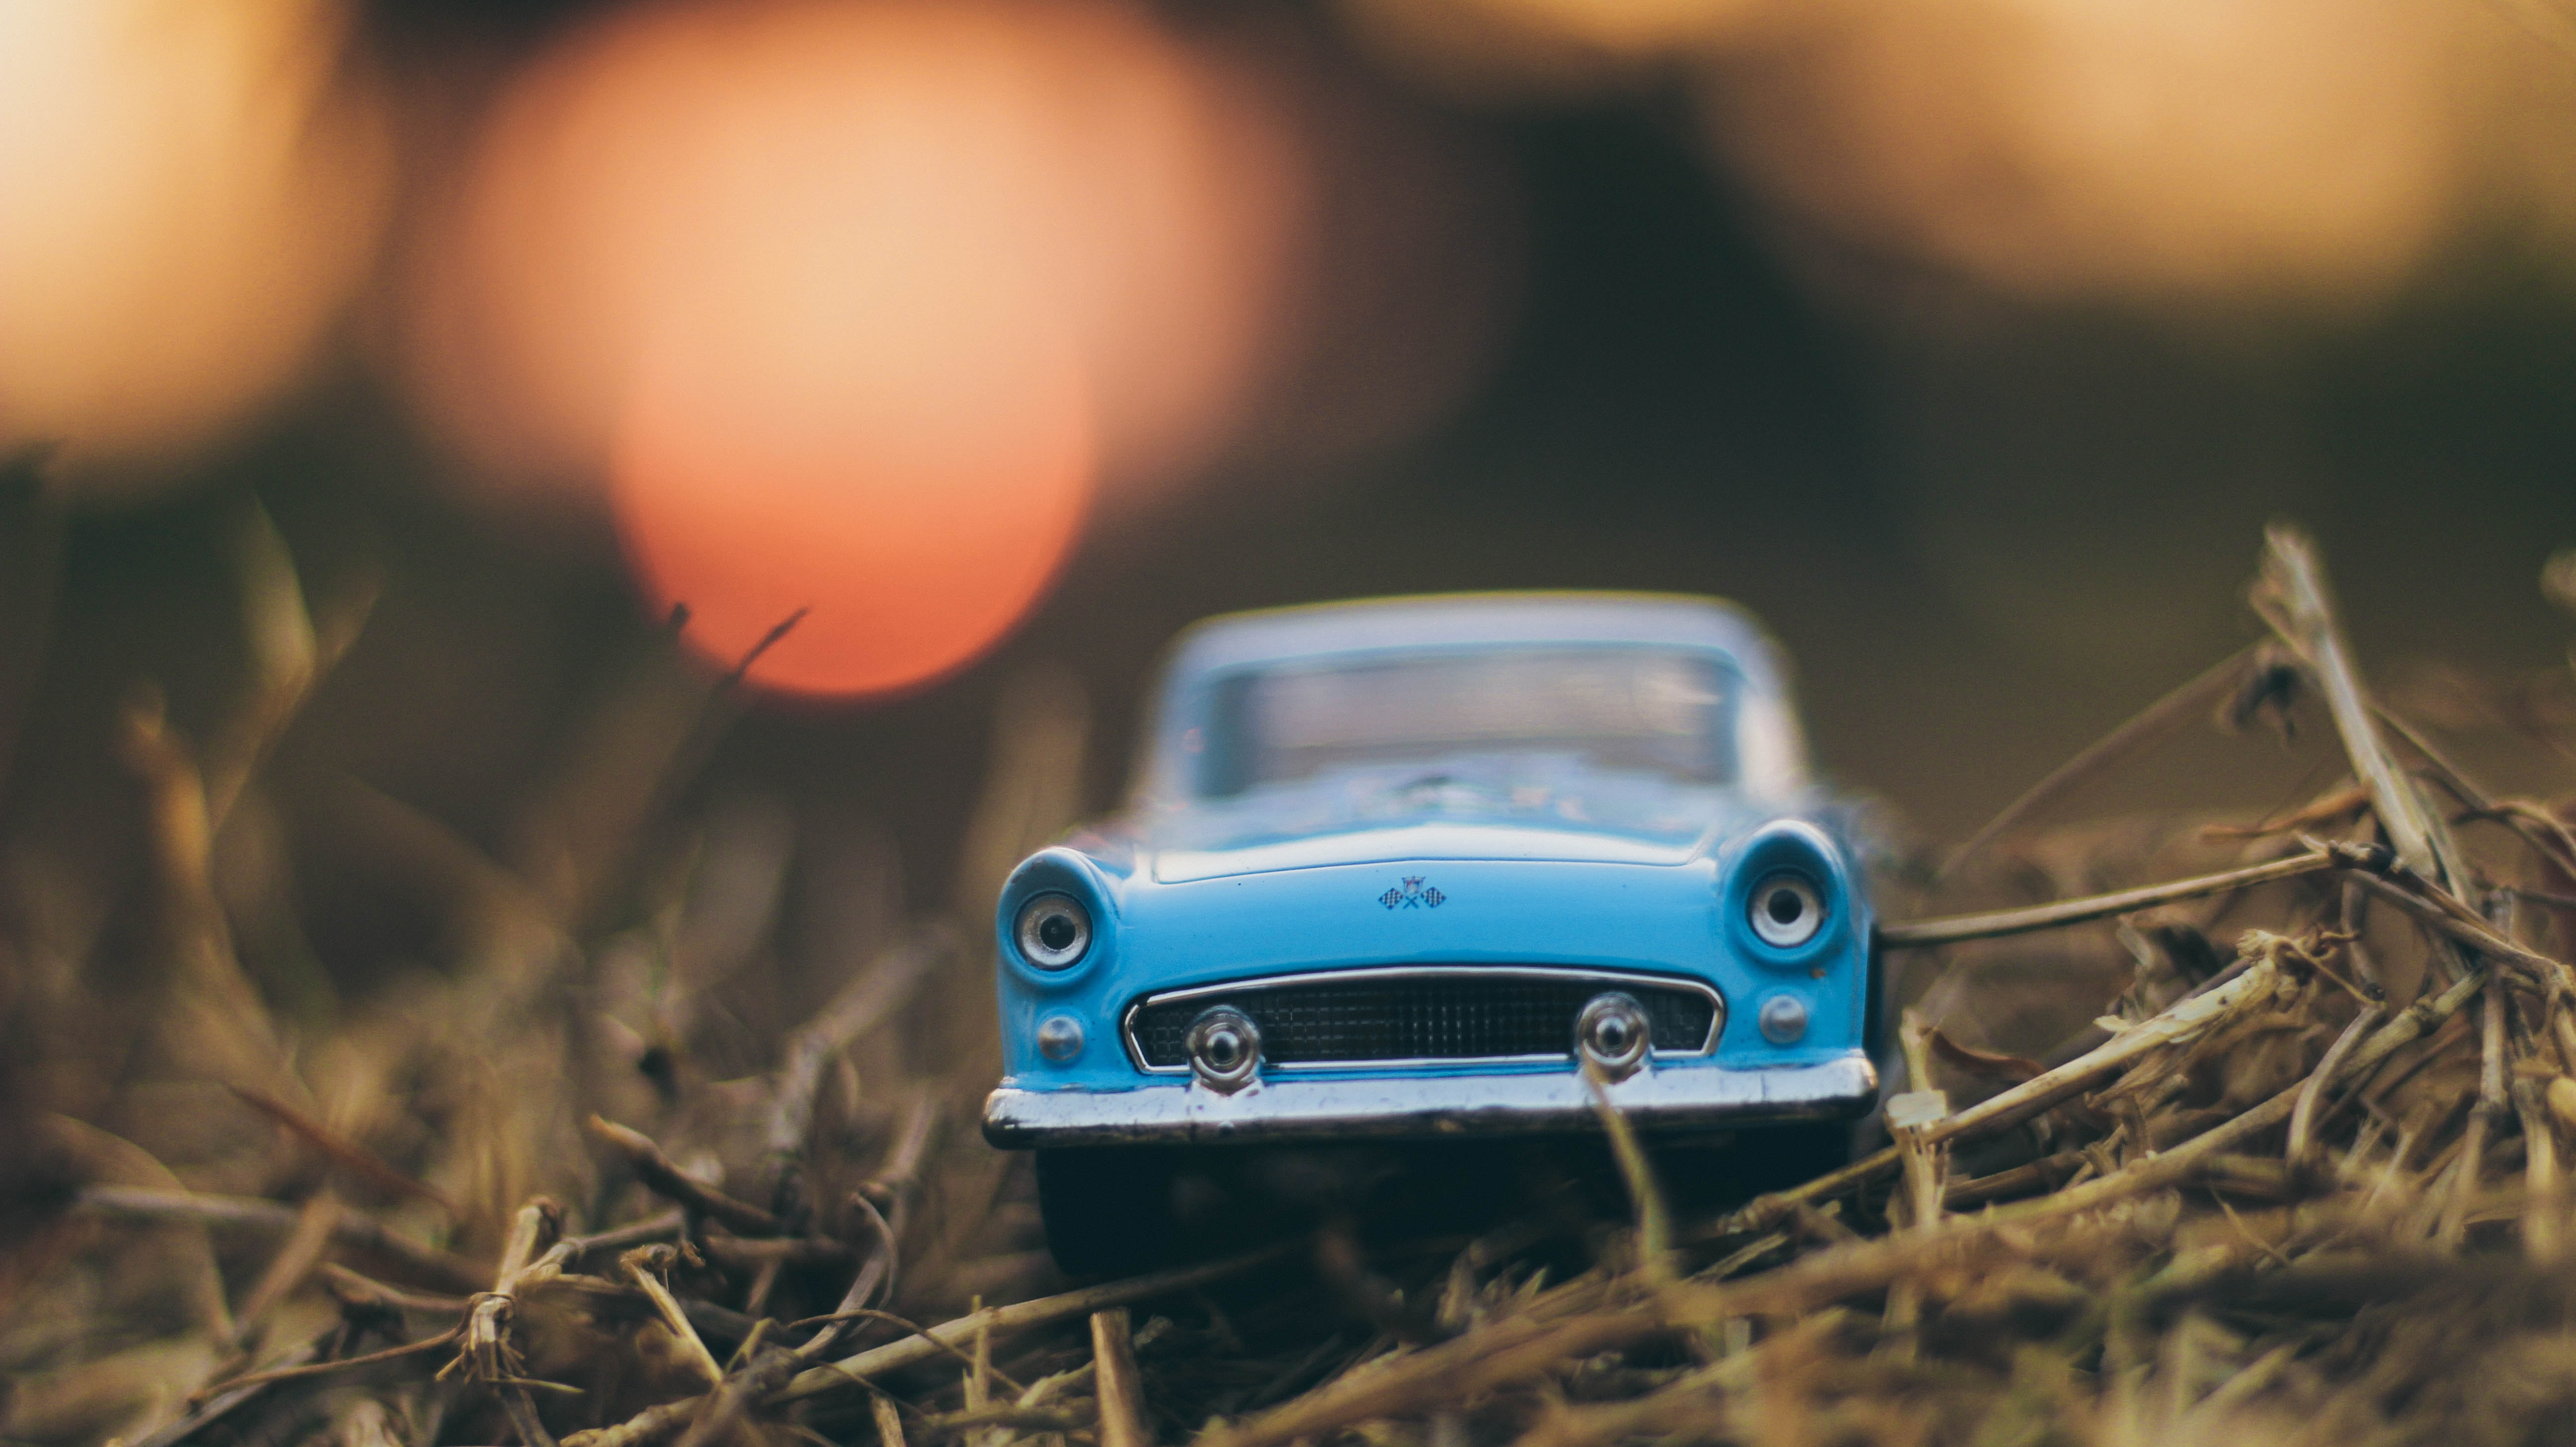 blue toy car on brown grass